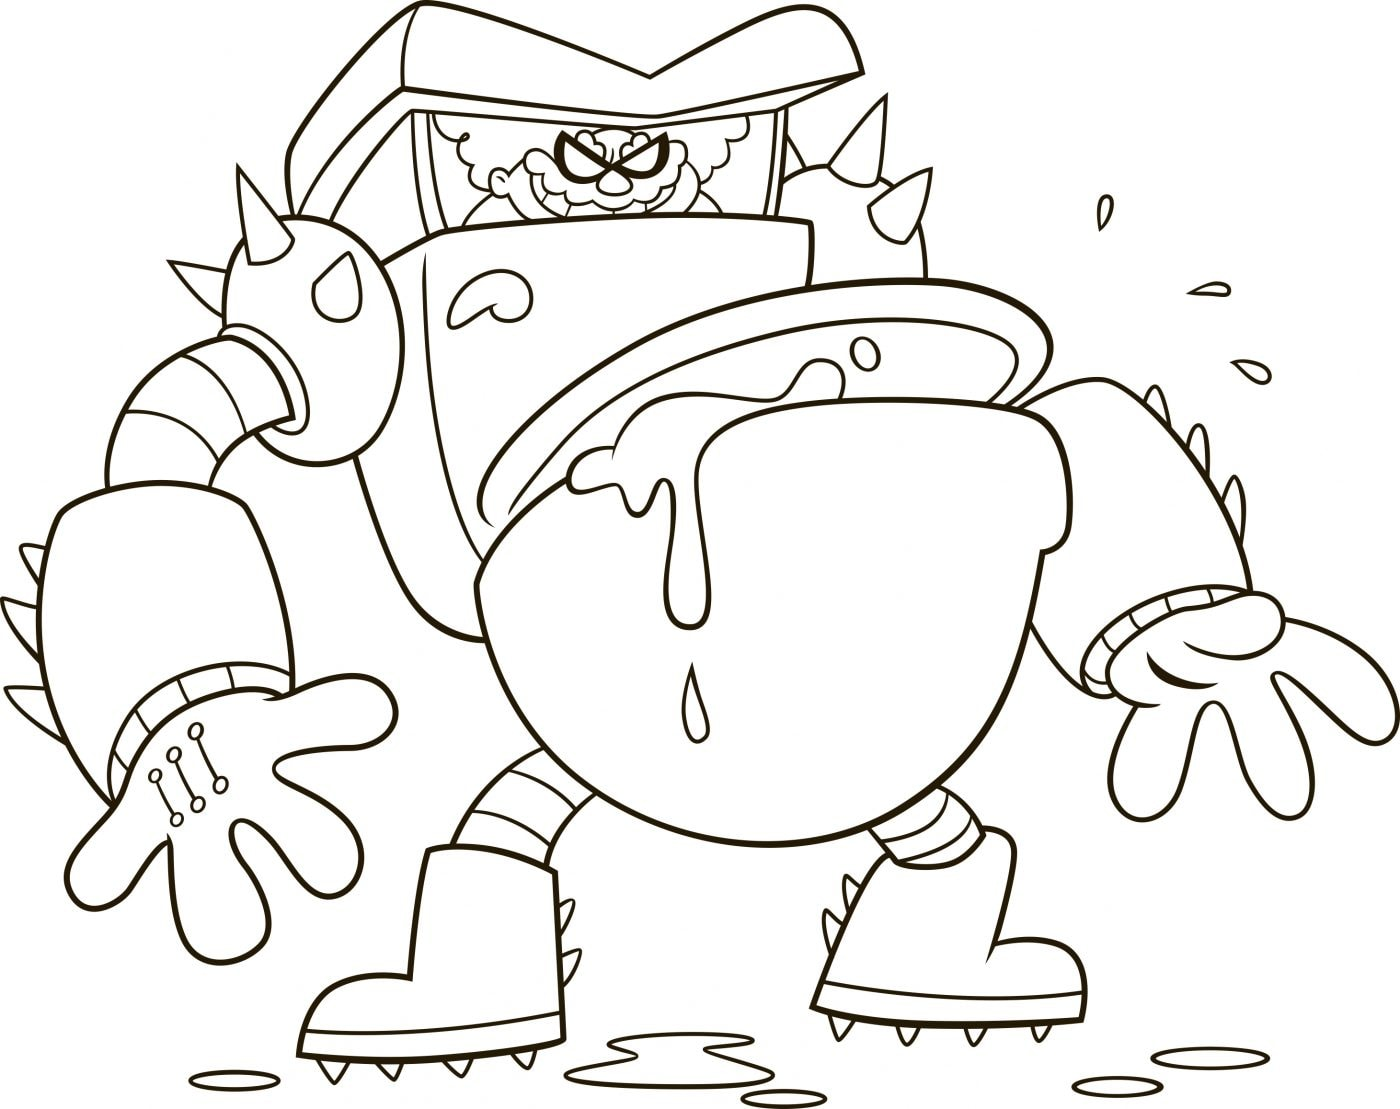 Captain Underpants Turbo Toilet 2000 Coloring Page